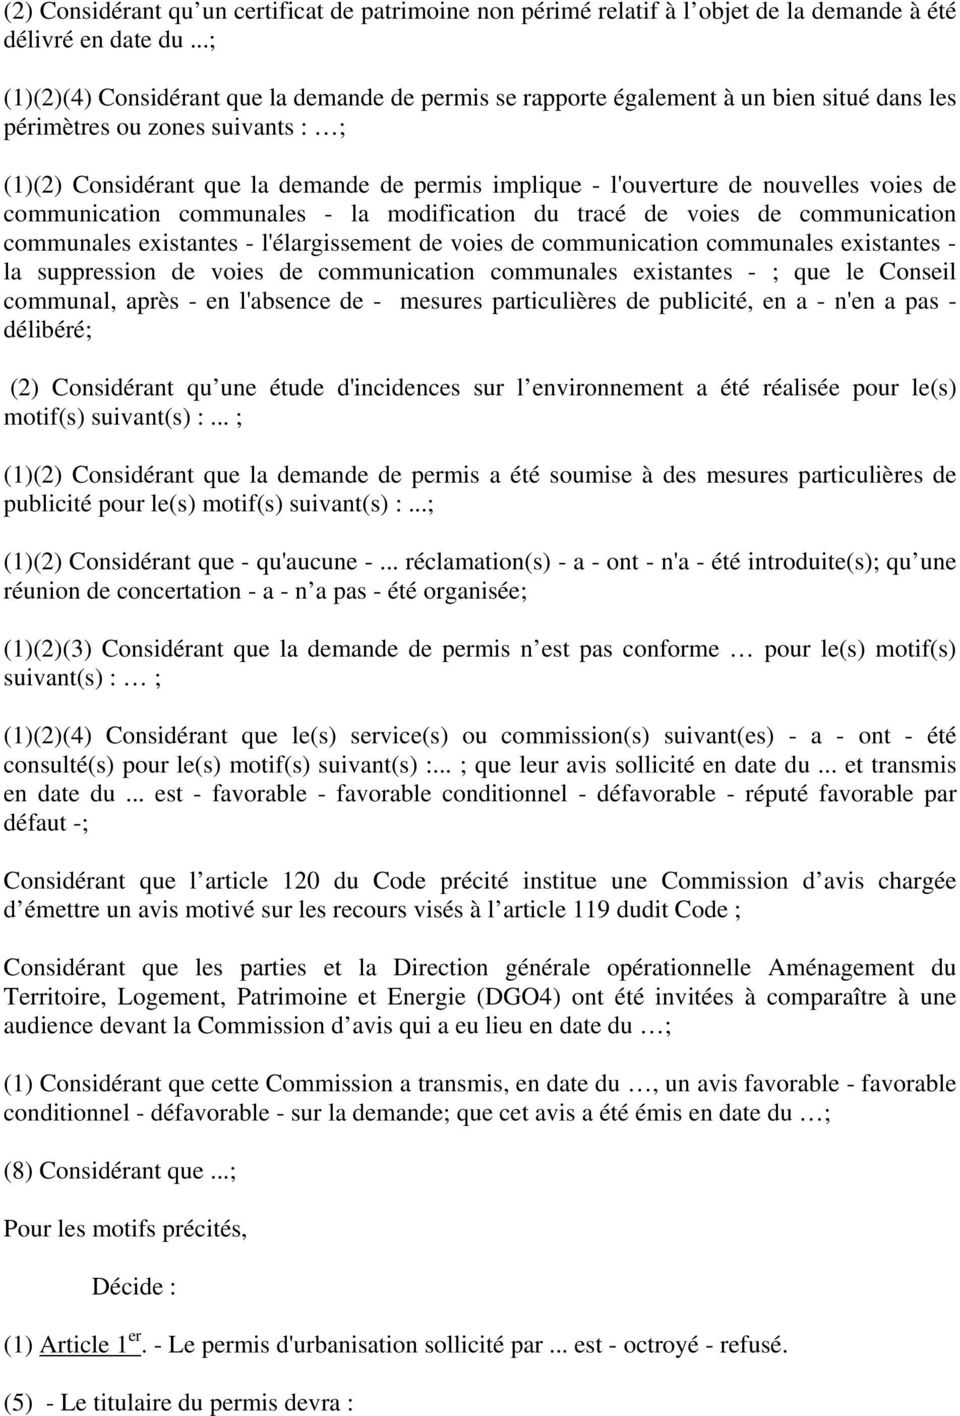 de nouvelles voies de communication communales - la modification du tracé de voies de communication communales existantes - l'élargissement de voies de communication communales existantes - la